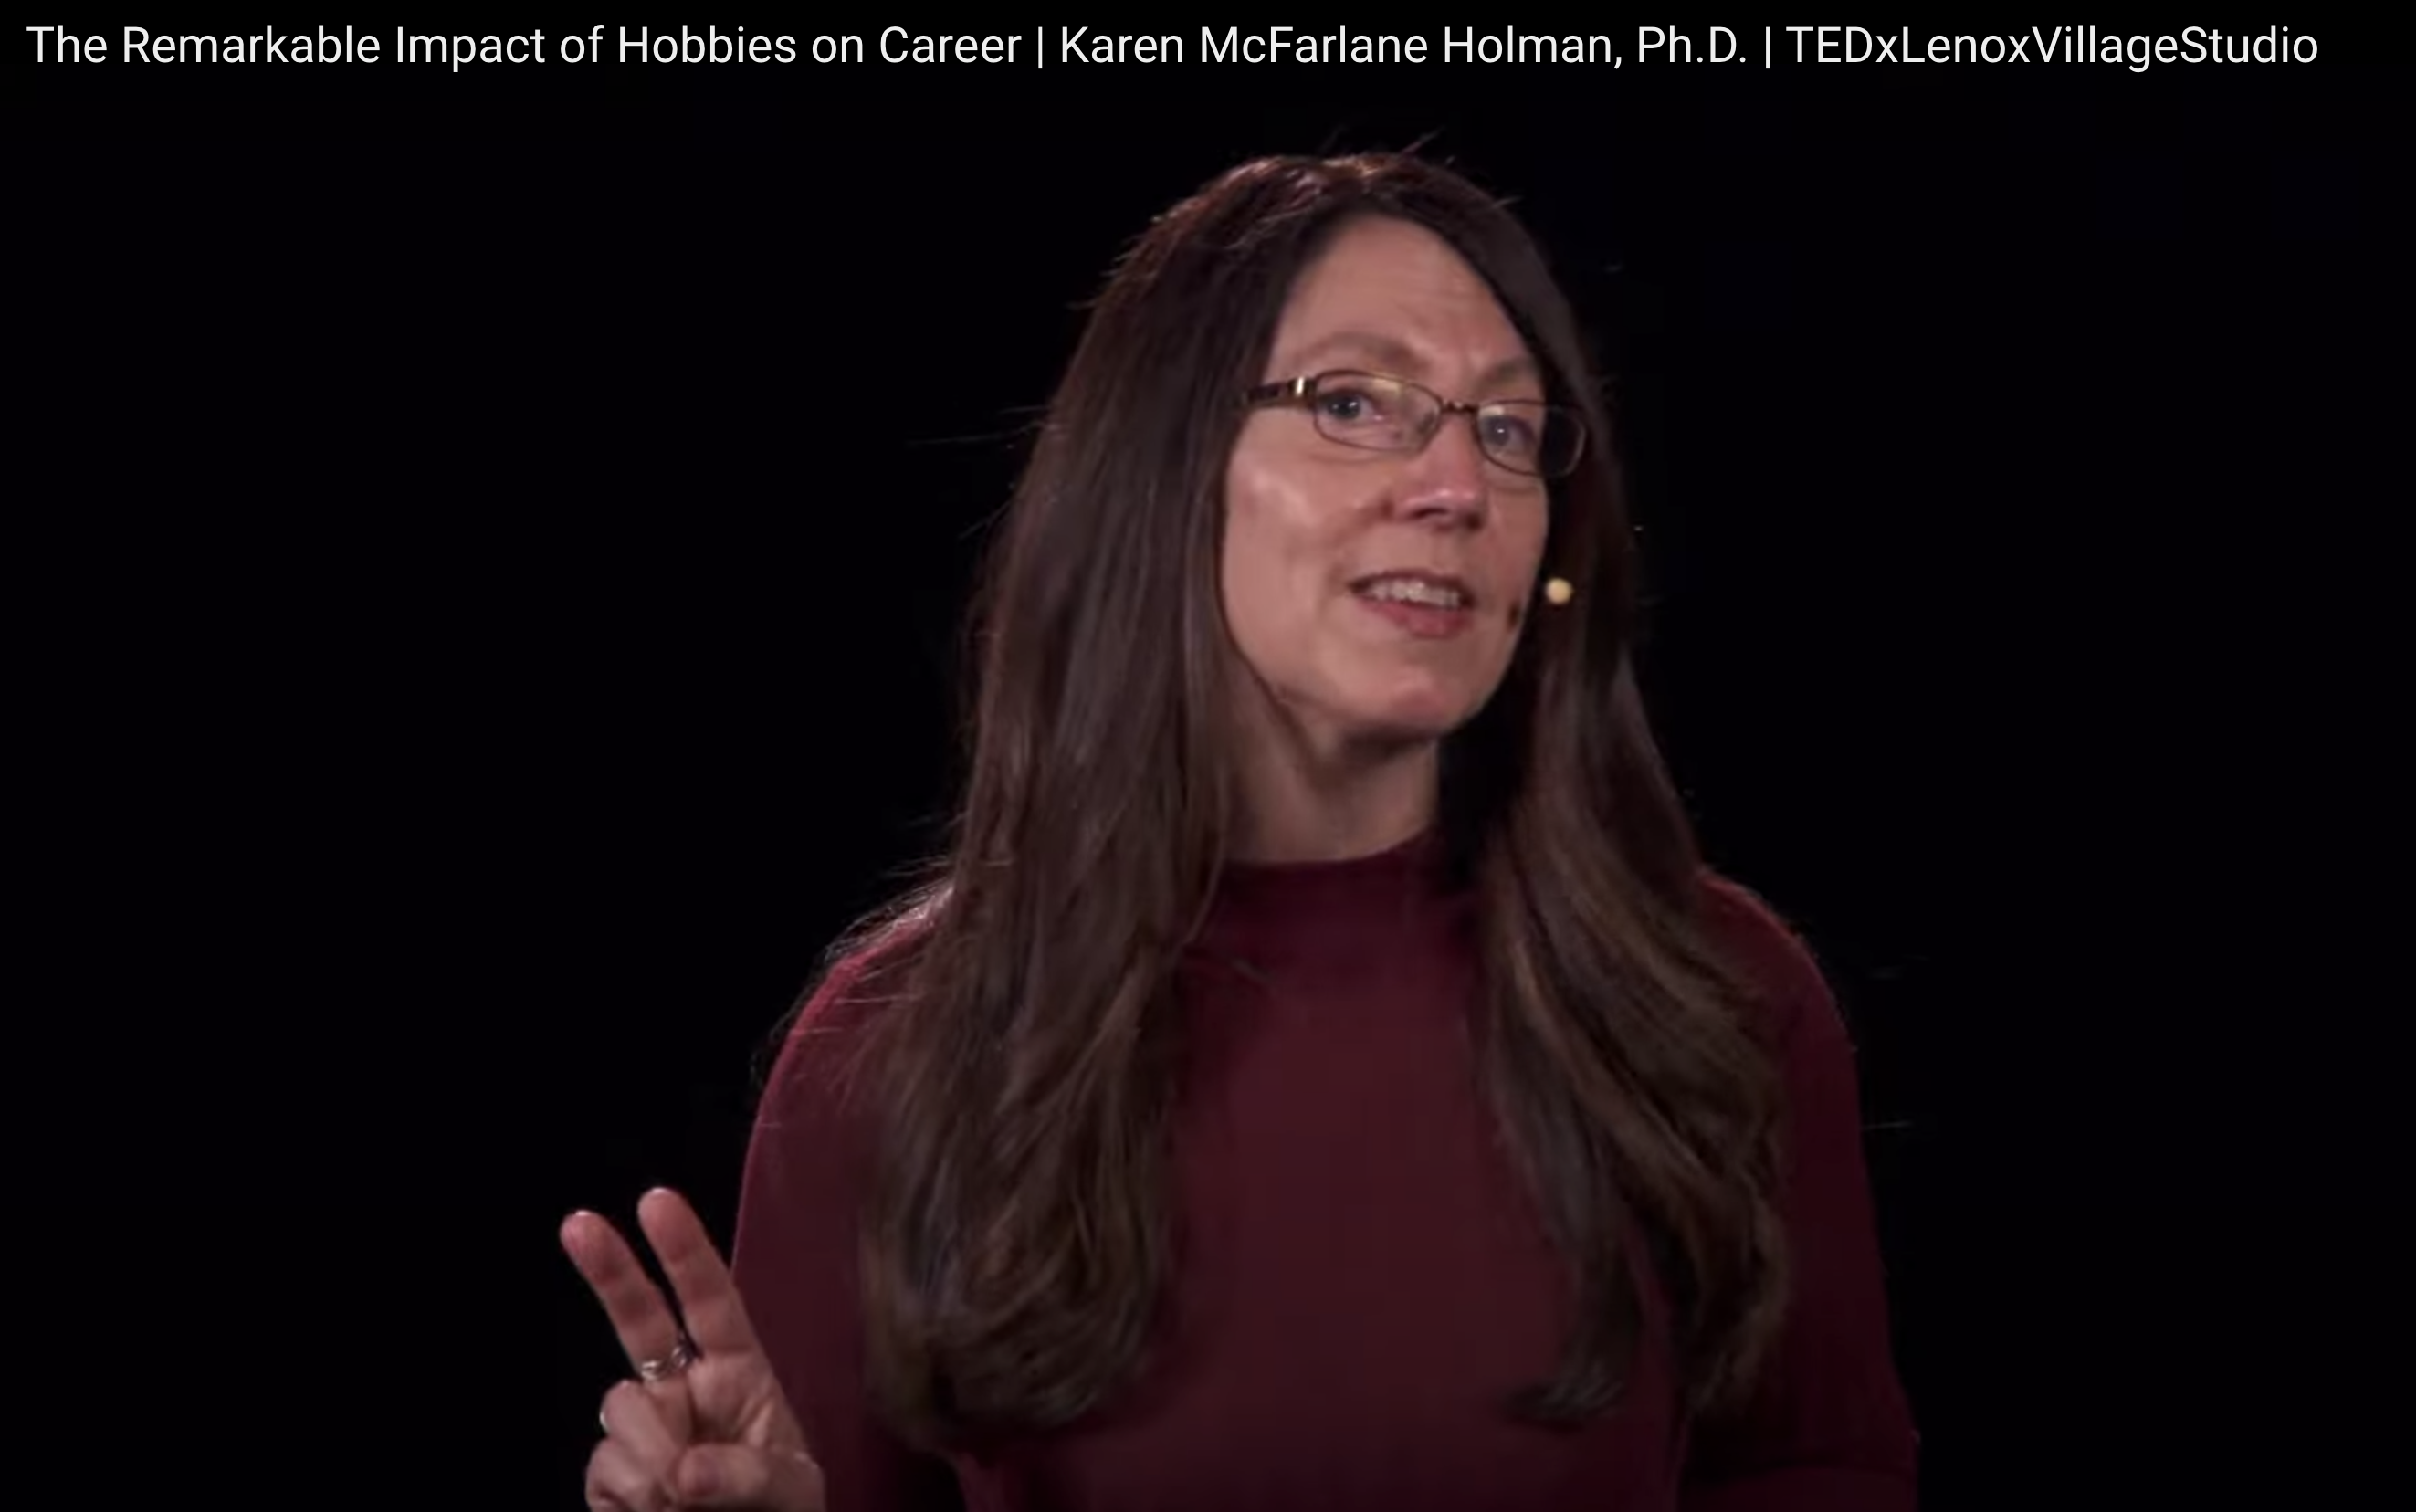 The Remarkable Impact of Hobbies on Career